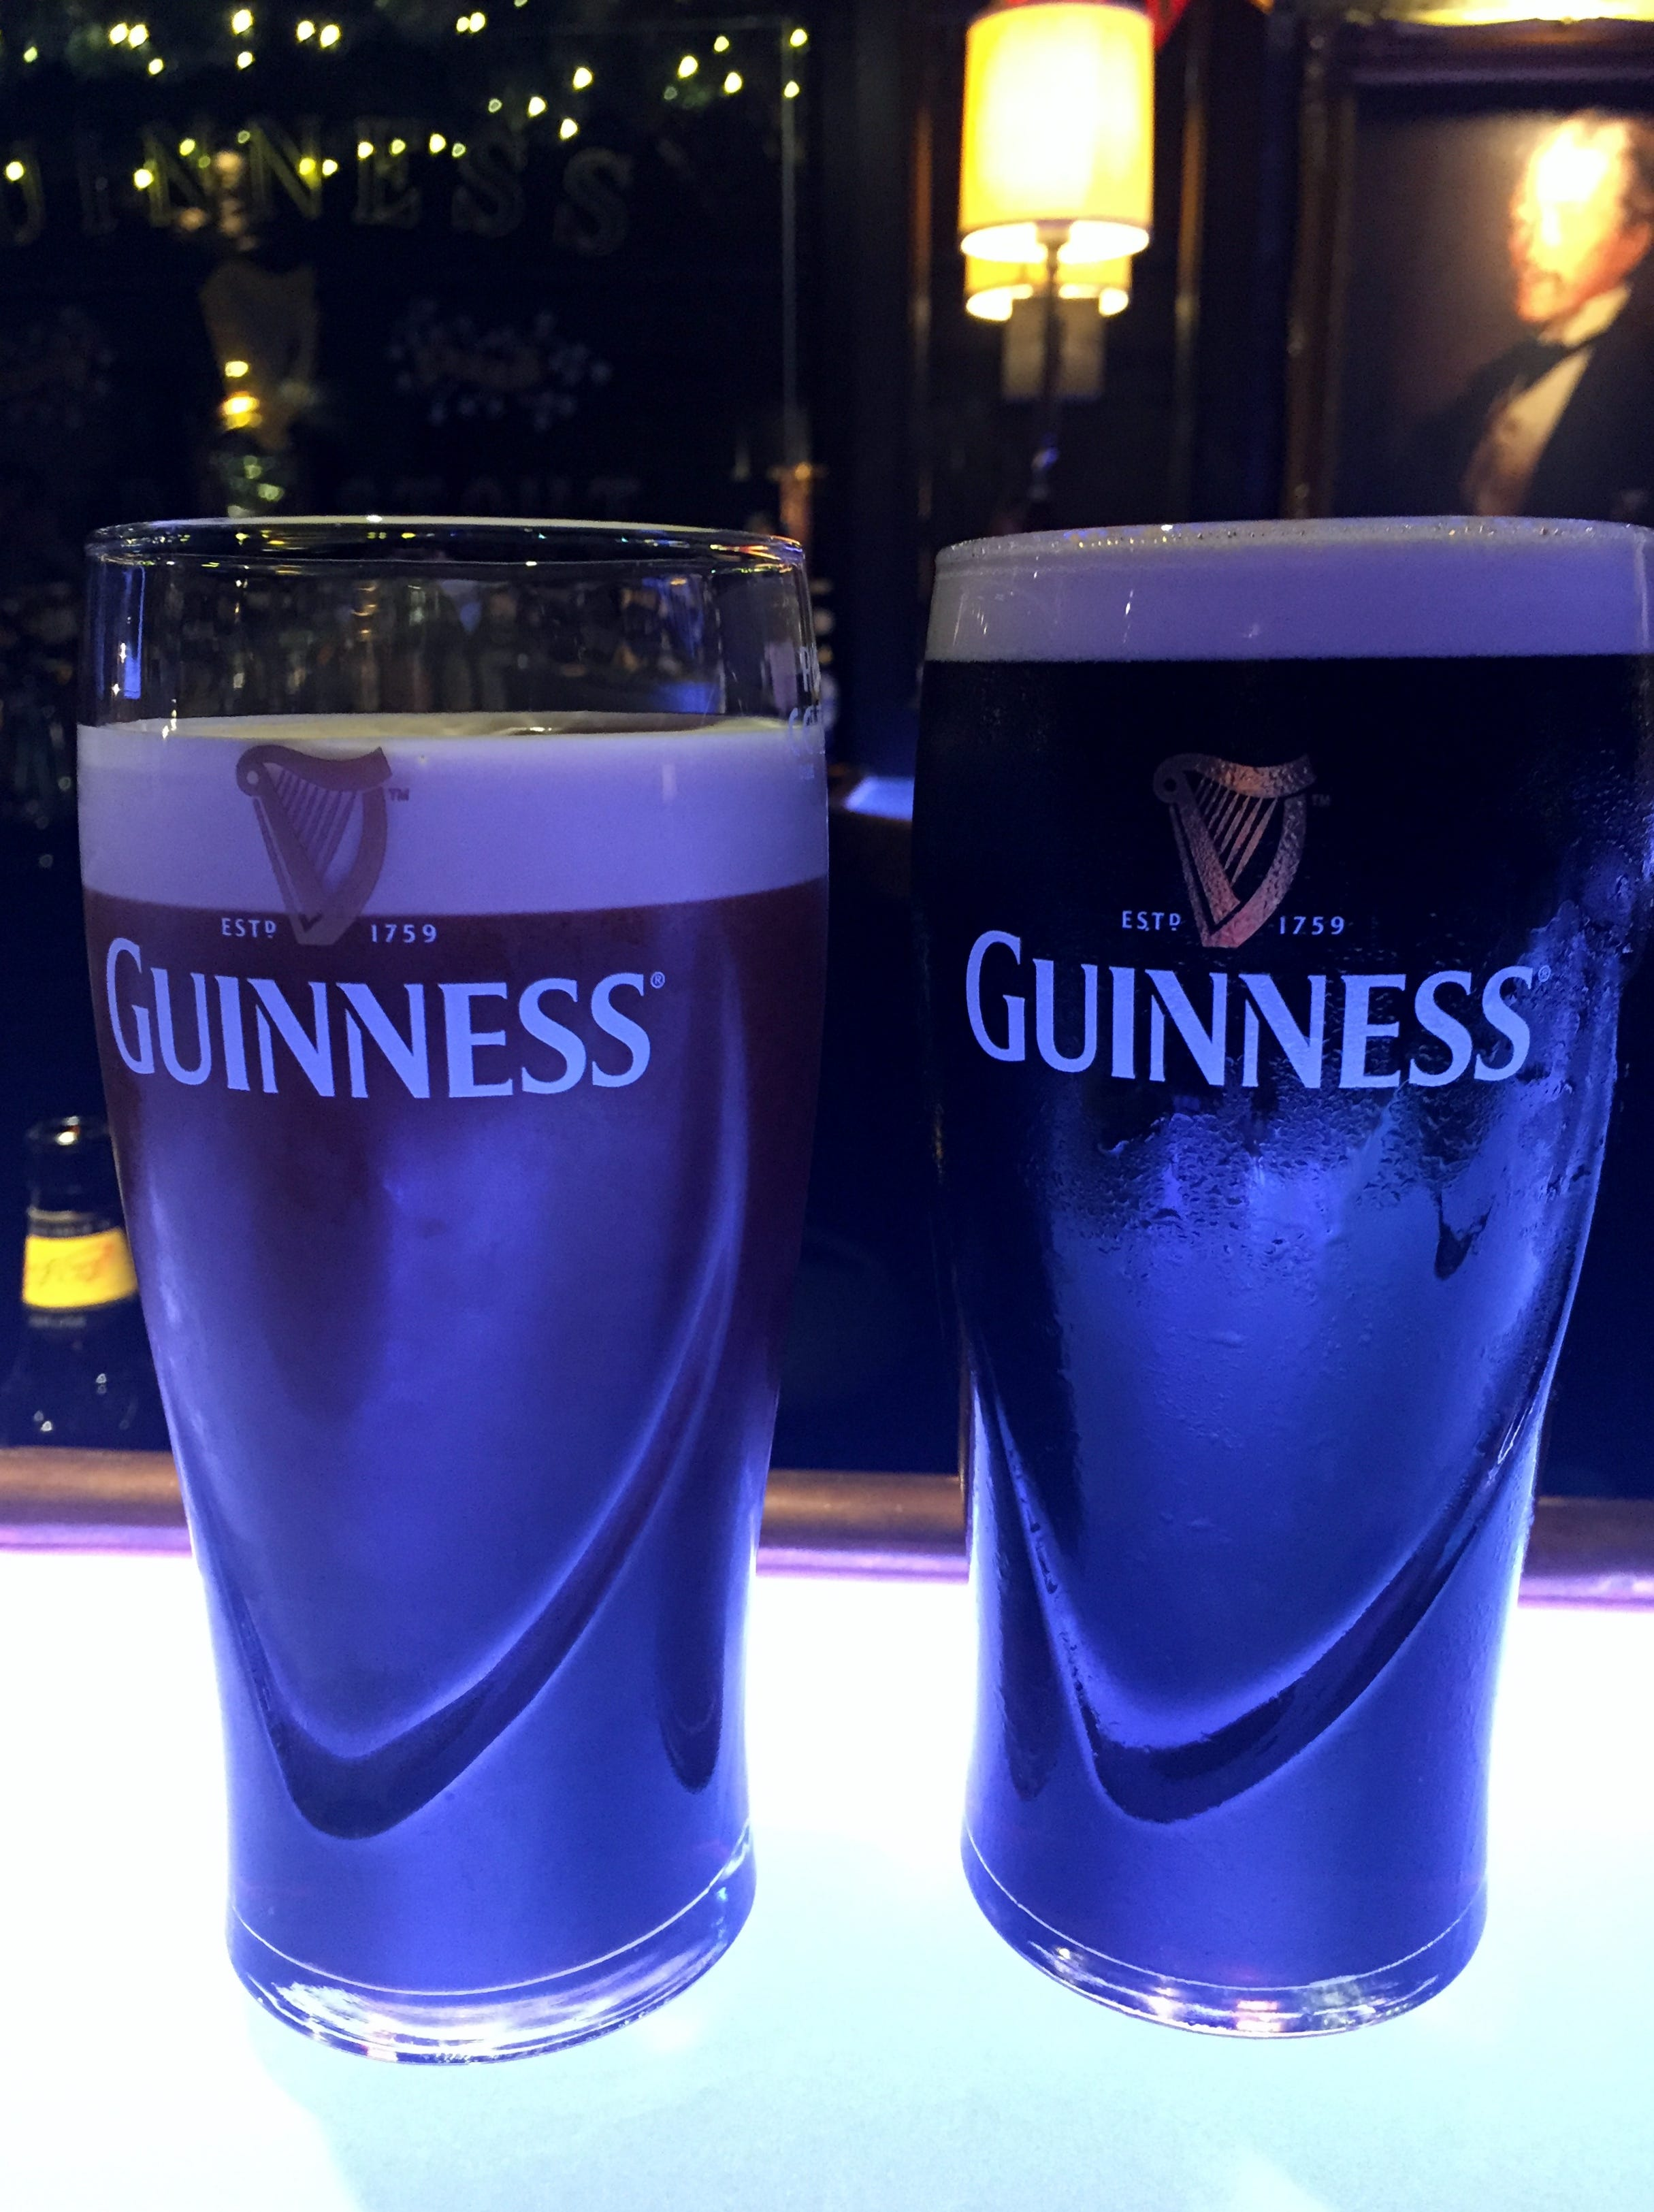 c2864263 636567795417429372-Waiting...and-the-perfect-pint-of-Guinness-Stout-credit-Susan-B.-Barnes.JPG